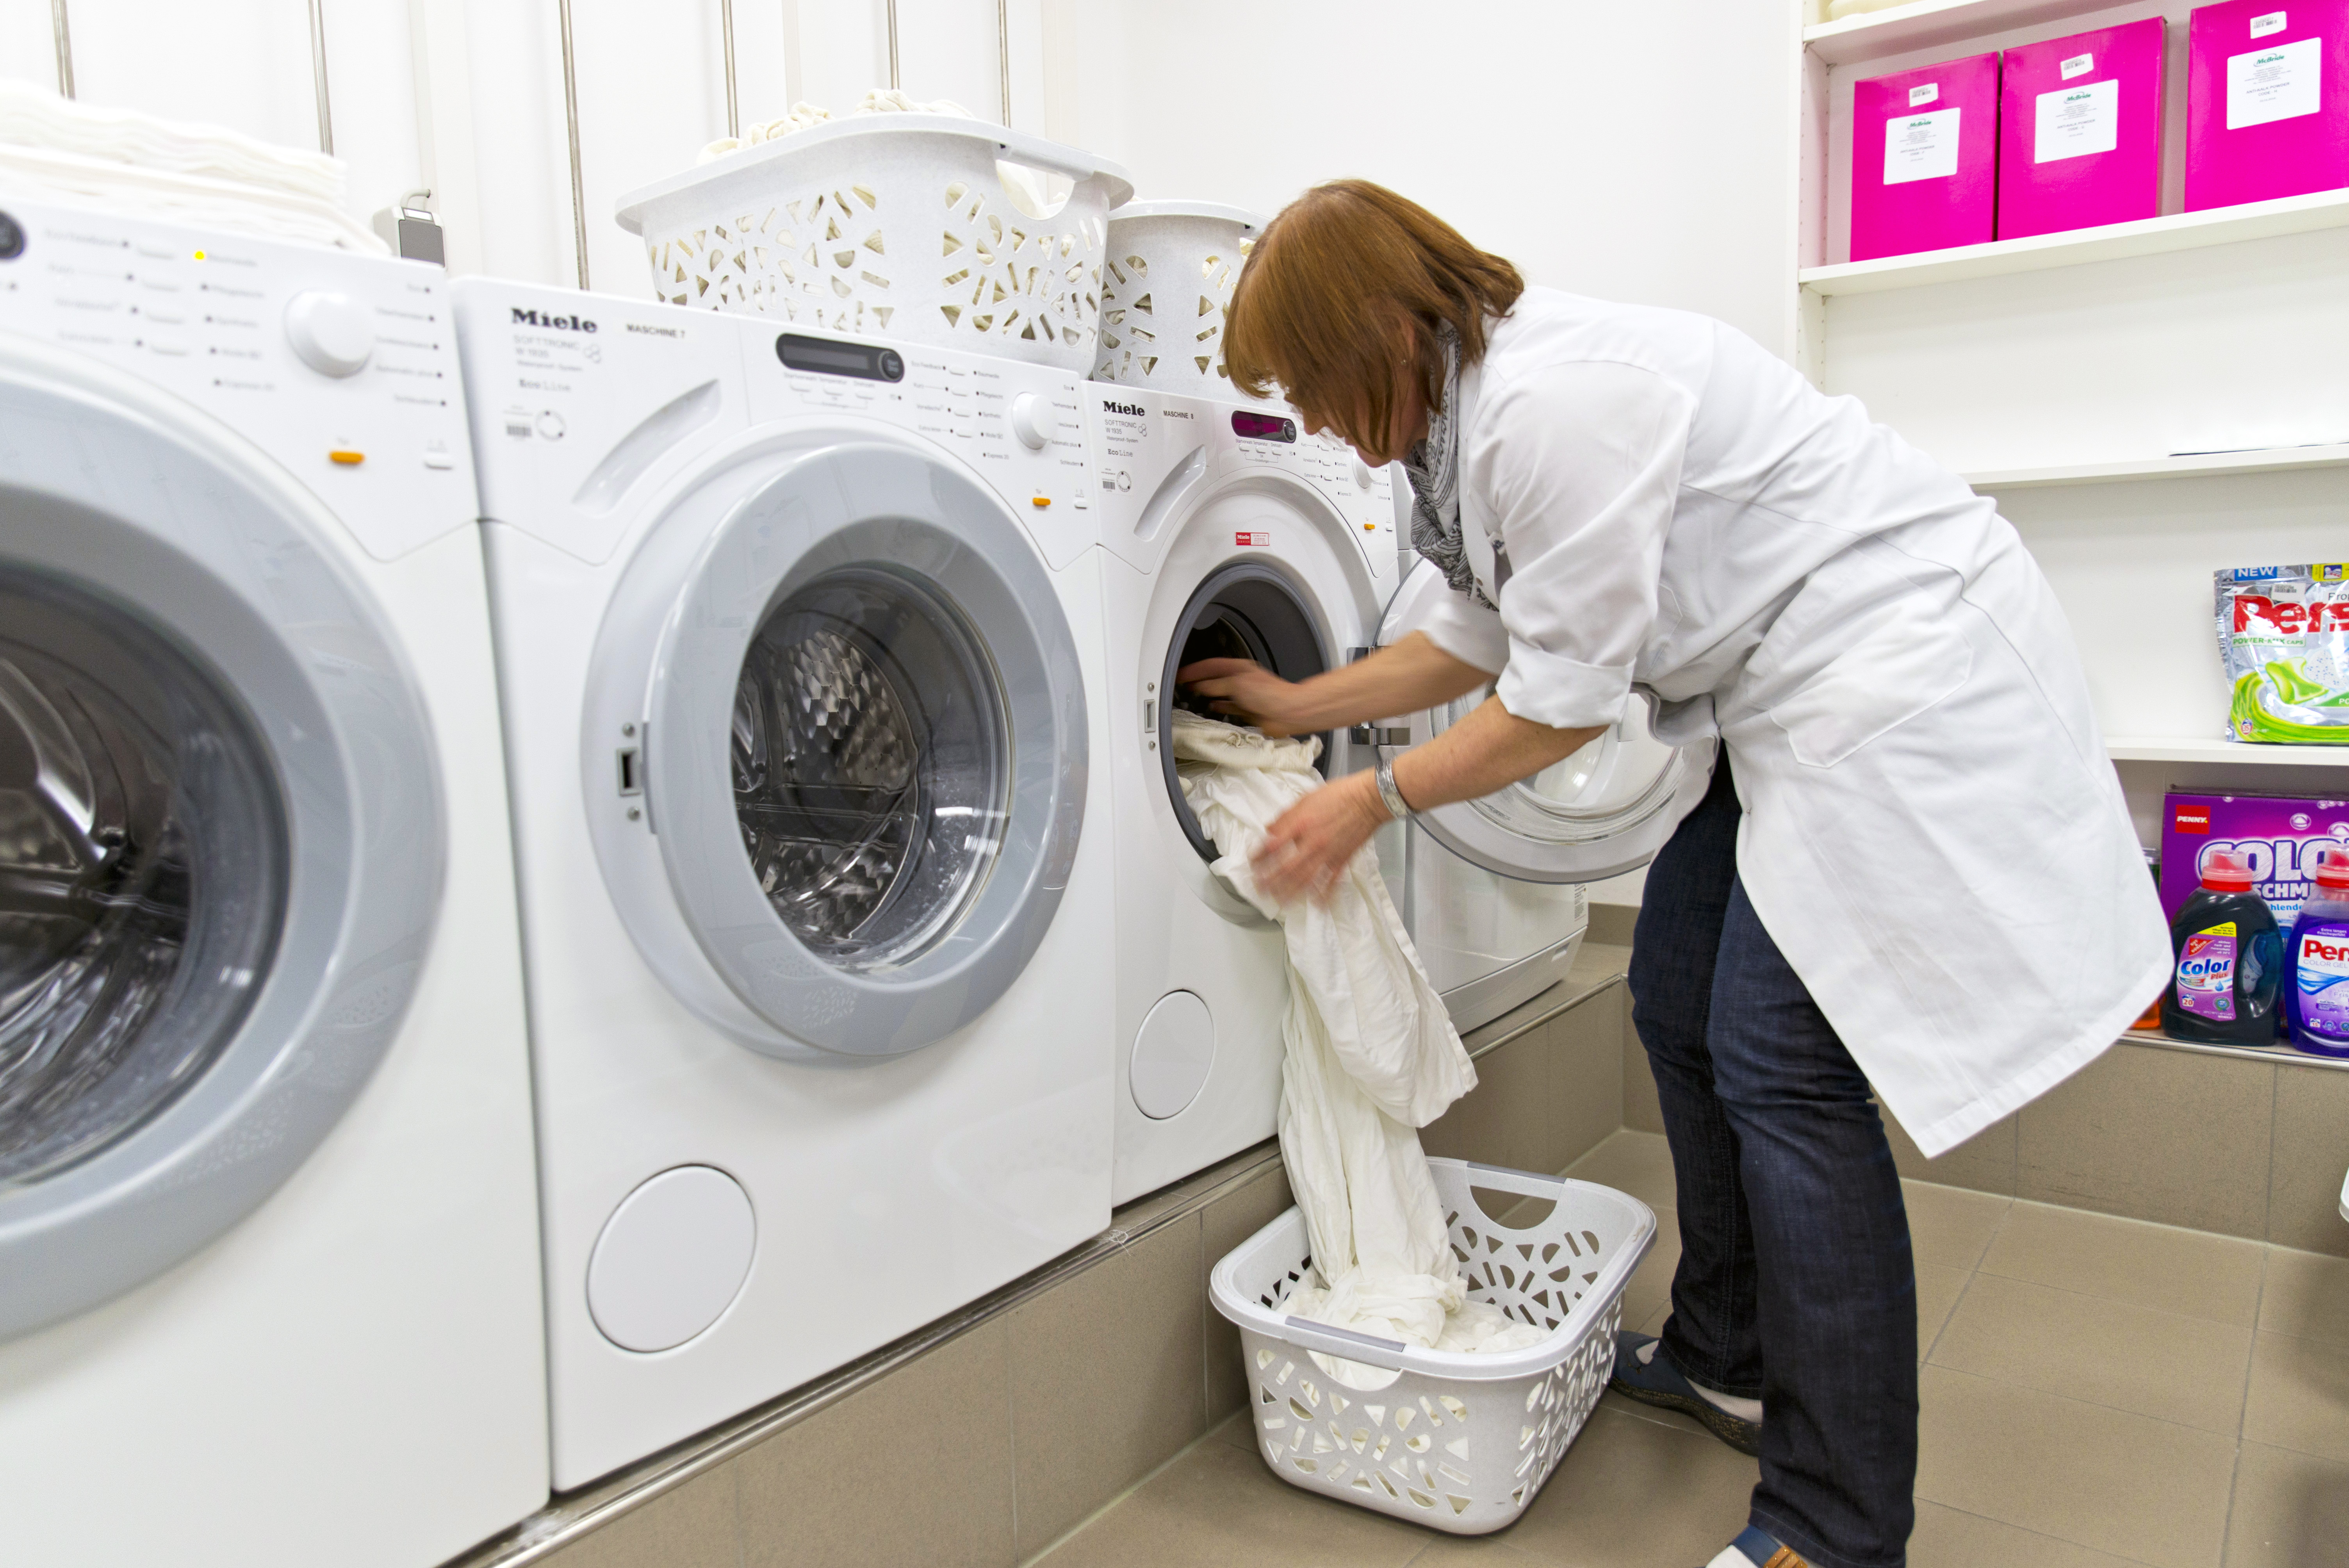 The test was carried out in Miele washing machines (W1514) at a temperature of 40° C and with a water hardness of 15 dH. Photo: Tobias Meyer